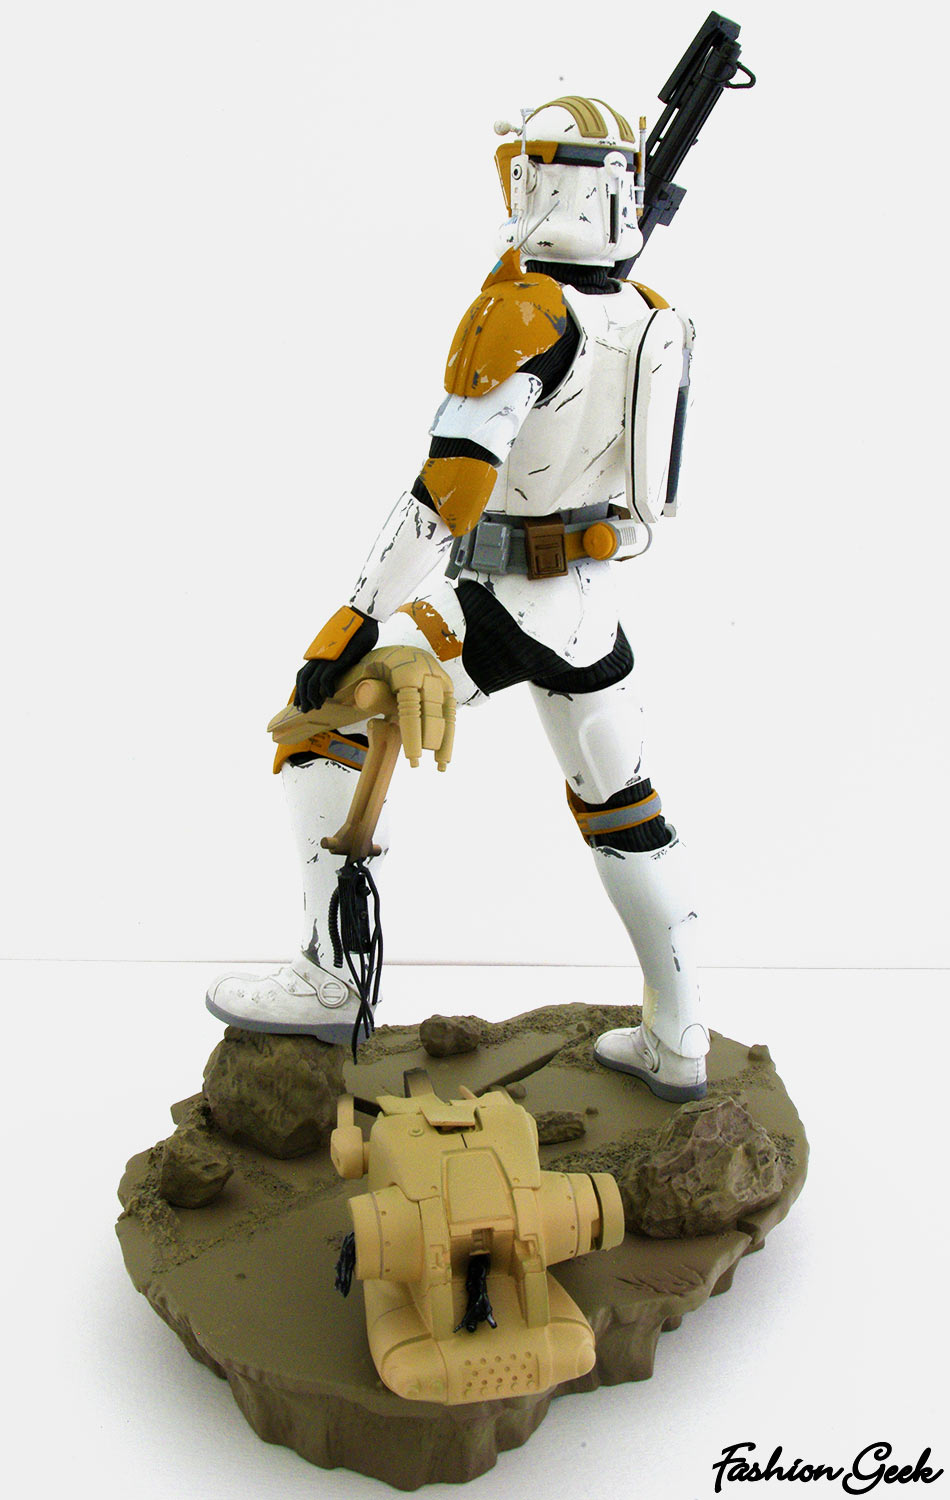 Commander-Cody-star-wars-figurine6